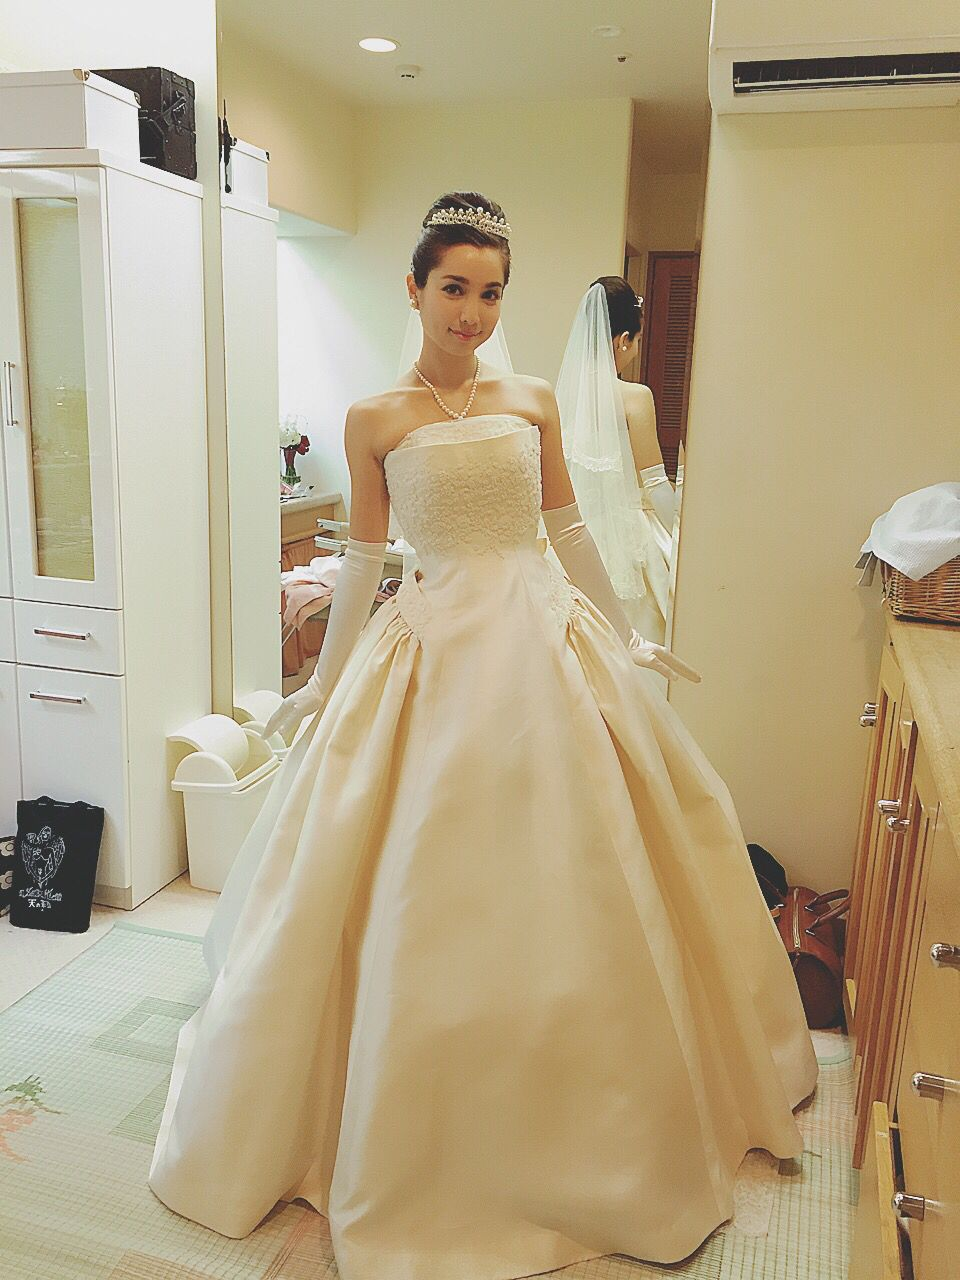 Bridal Fair Mother Agency Office Modeling Gown Dress Prom